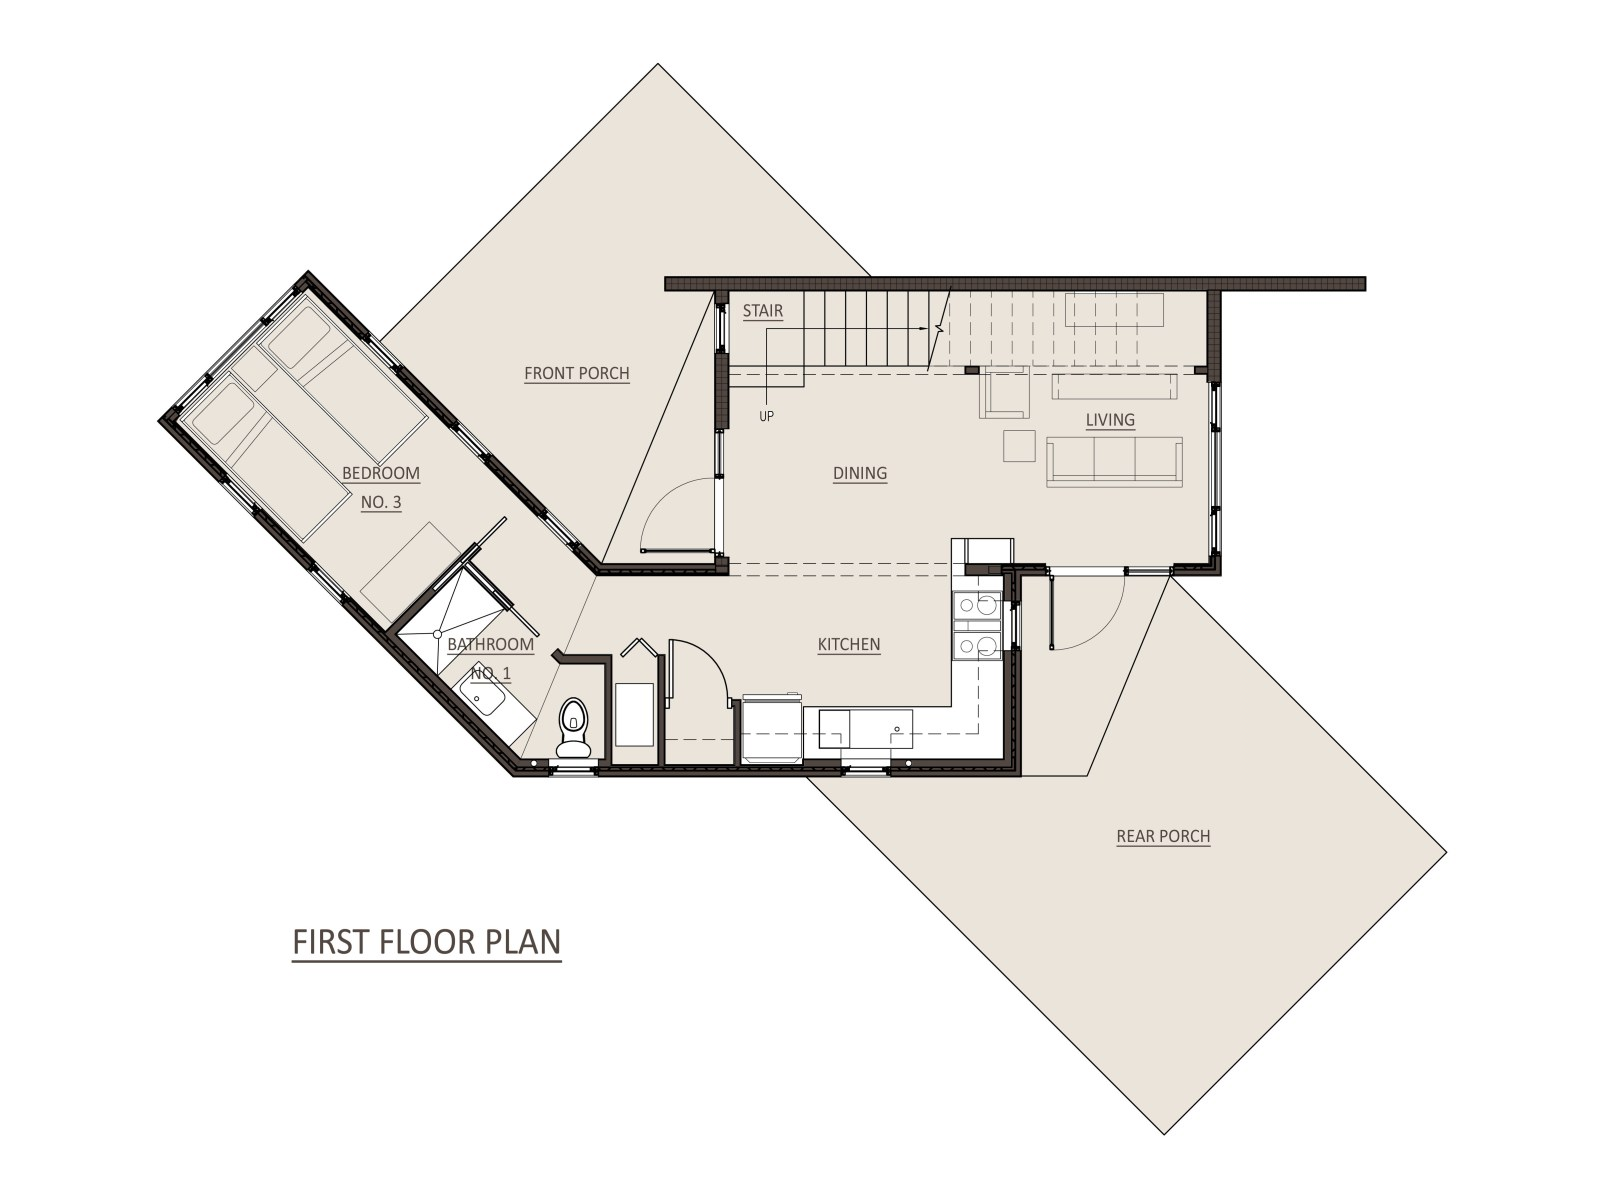 floor-plan-1-pres.jpg?fit=1600%2C1600